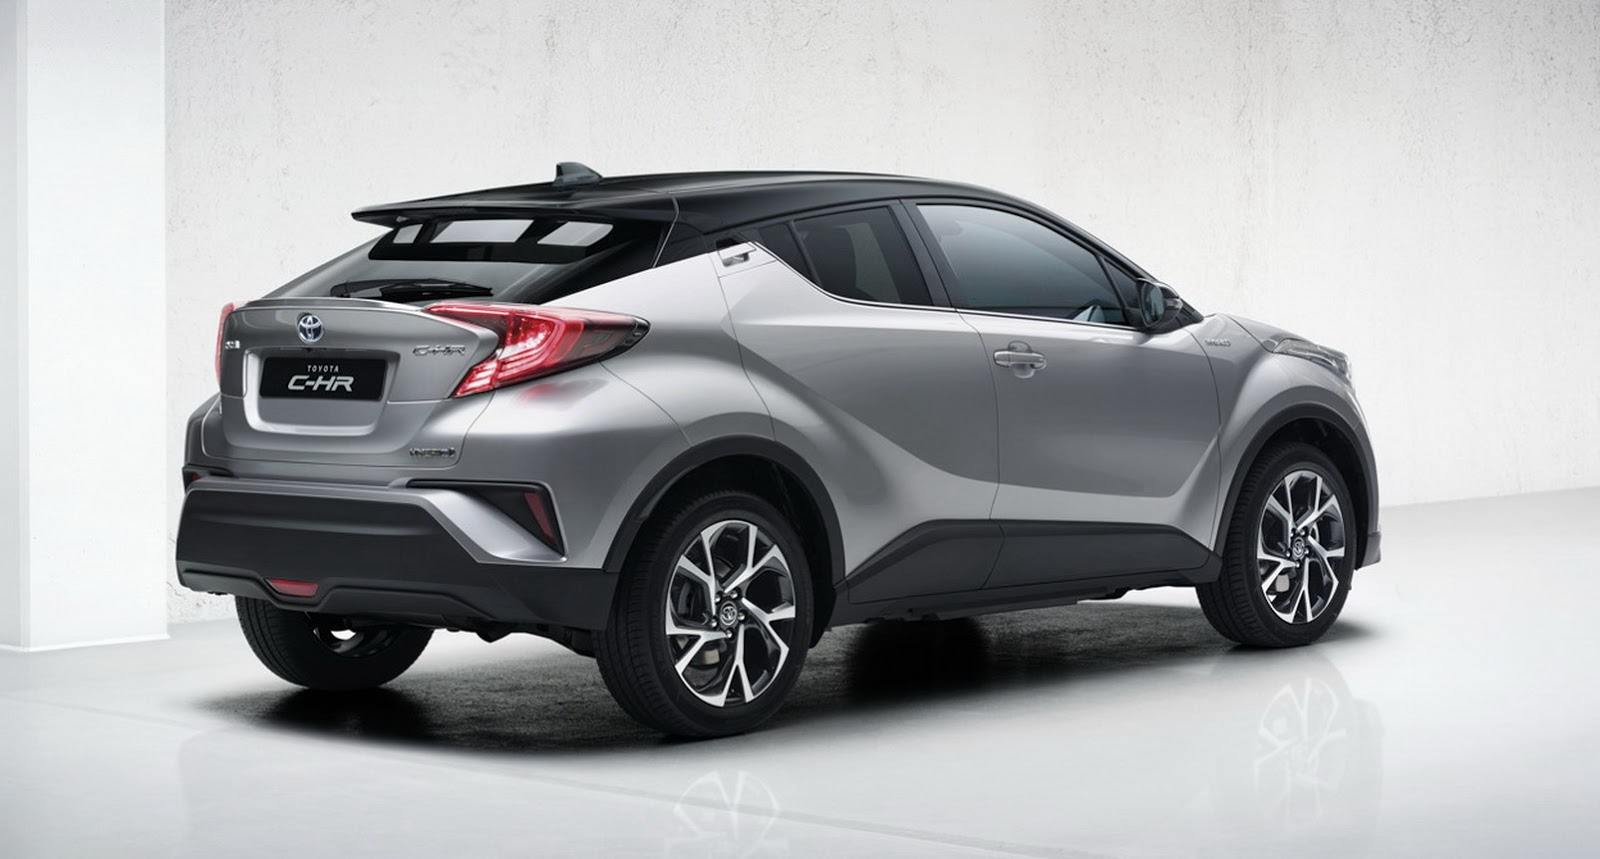 Used Honda Hrv >> New Toyota C-HR Gets 1.2L Turbo, 2.0L And 1.8L Hybrid Powertrains [New Pics] | carscoops.com